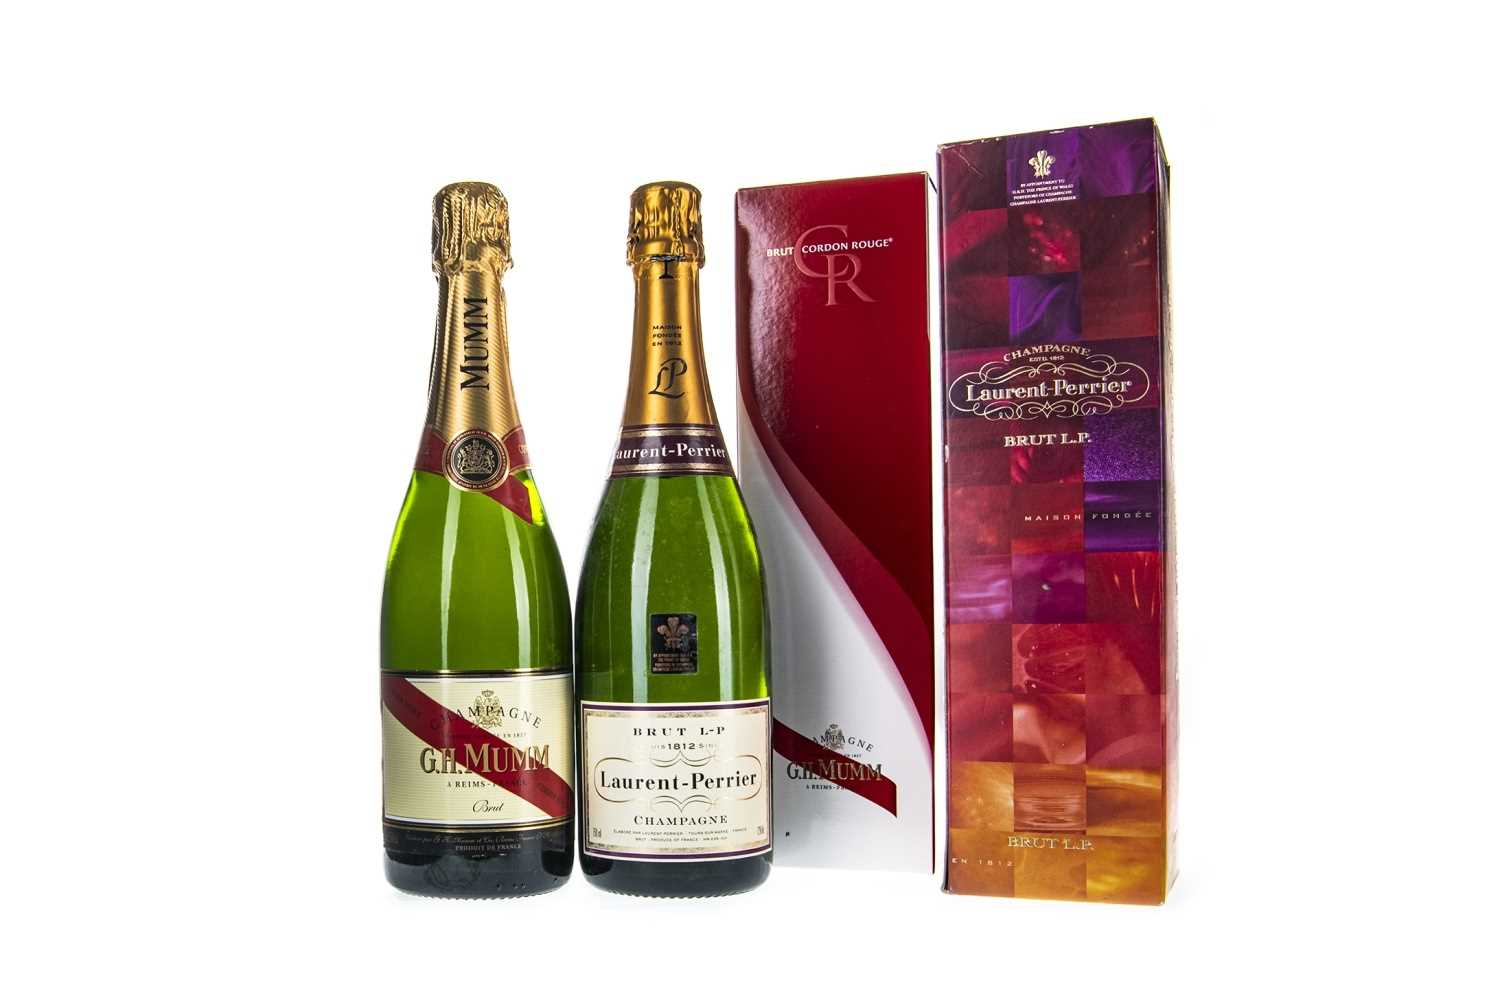 Lot 1012-GH MUMM AND LAURENT PERRIER